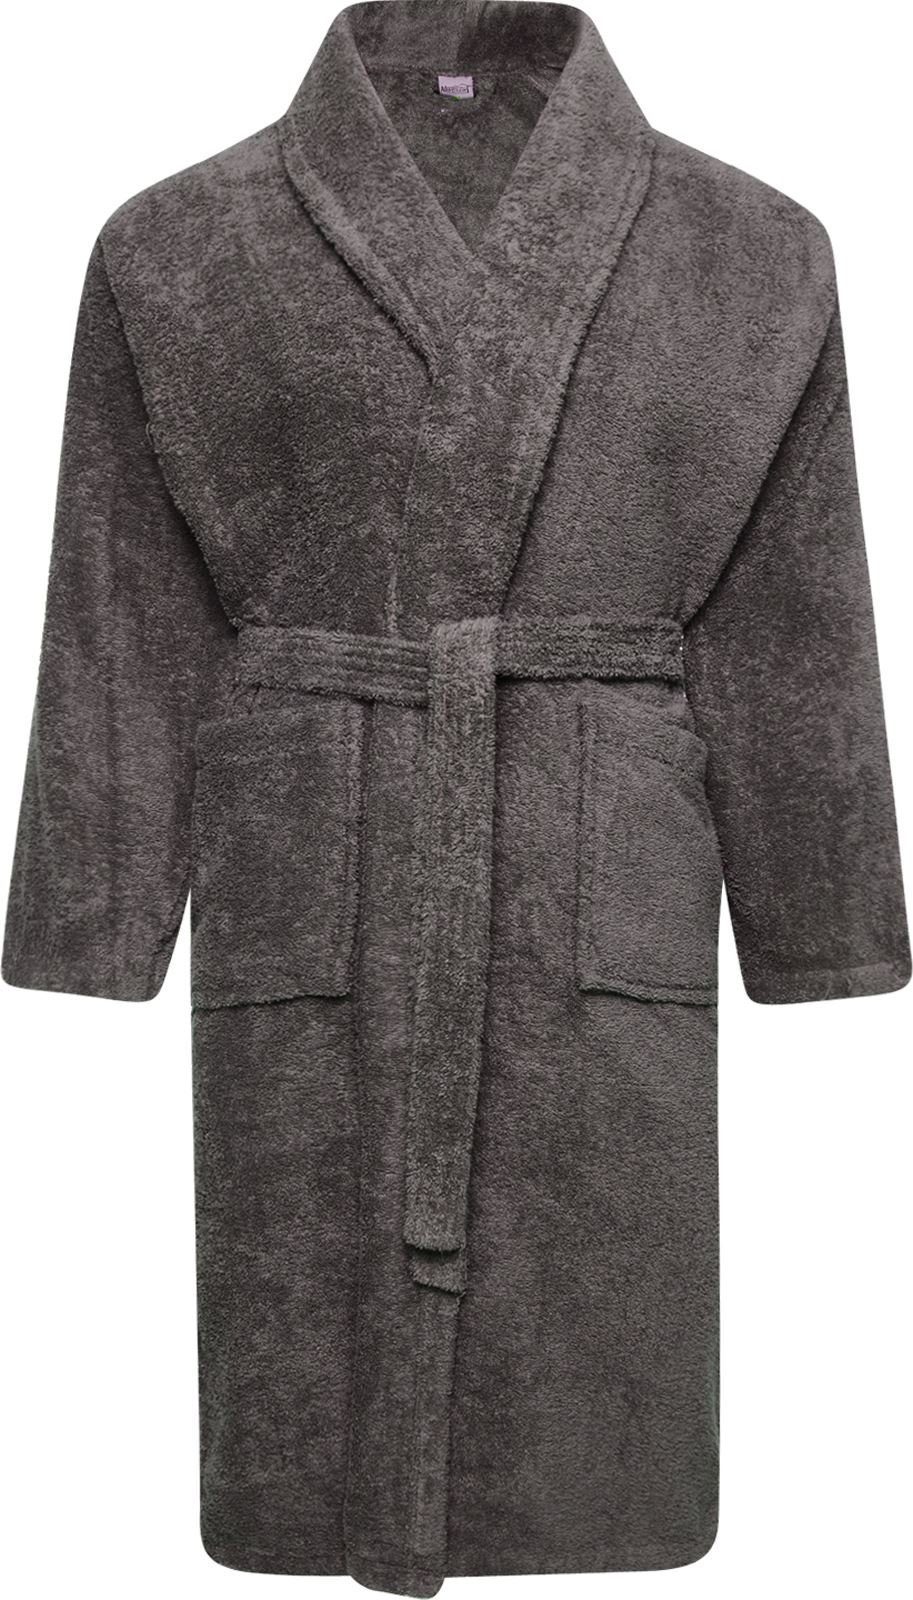 mens ladies 100 cotton terry toweling shawl grey. Black Bedroom Furniture Sets. Home Design Ideas